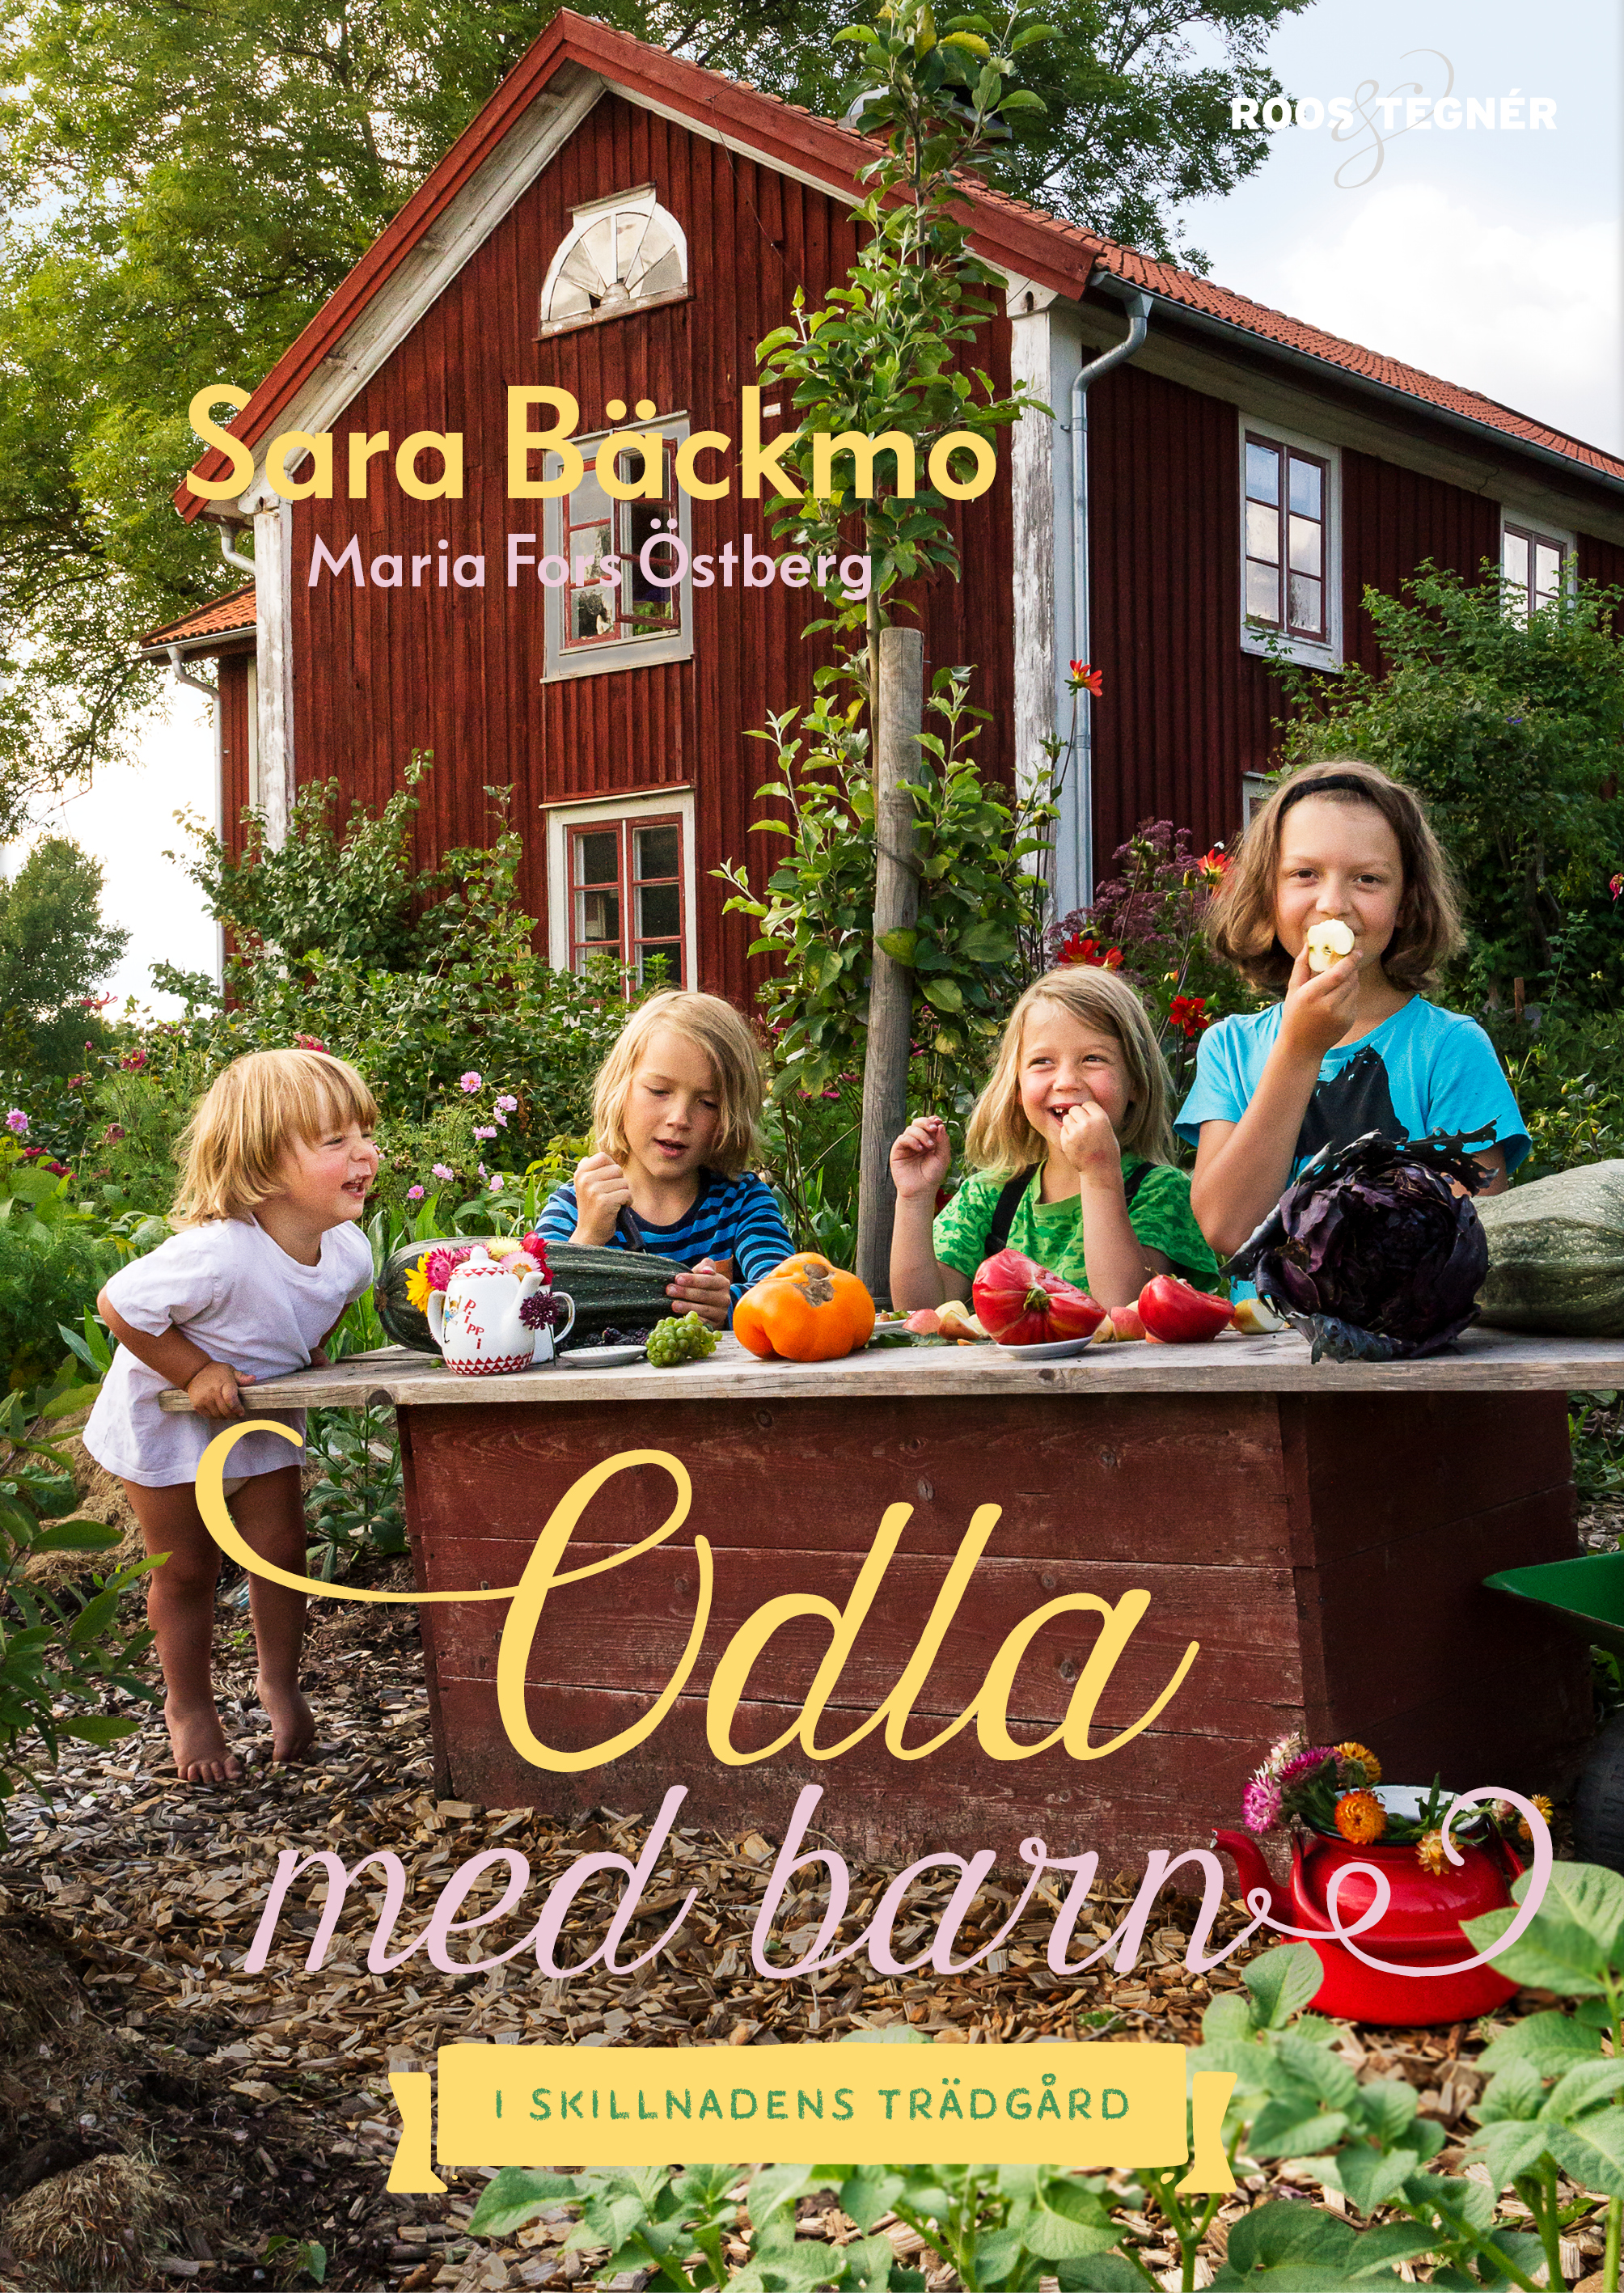 Bokomslag med fyra glada barn i trädgården som leker affär. Growing with kids, four happy children on the cover.